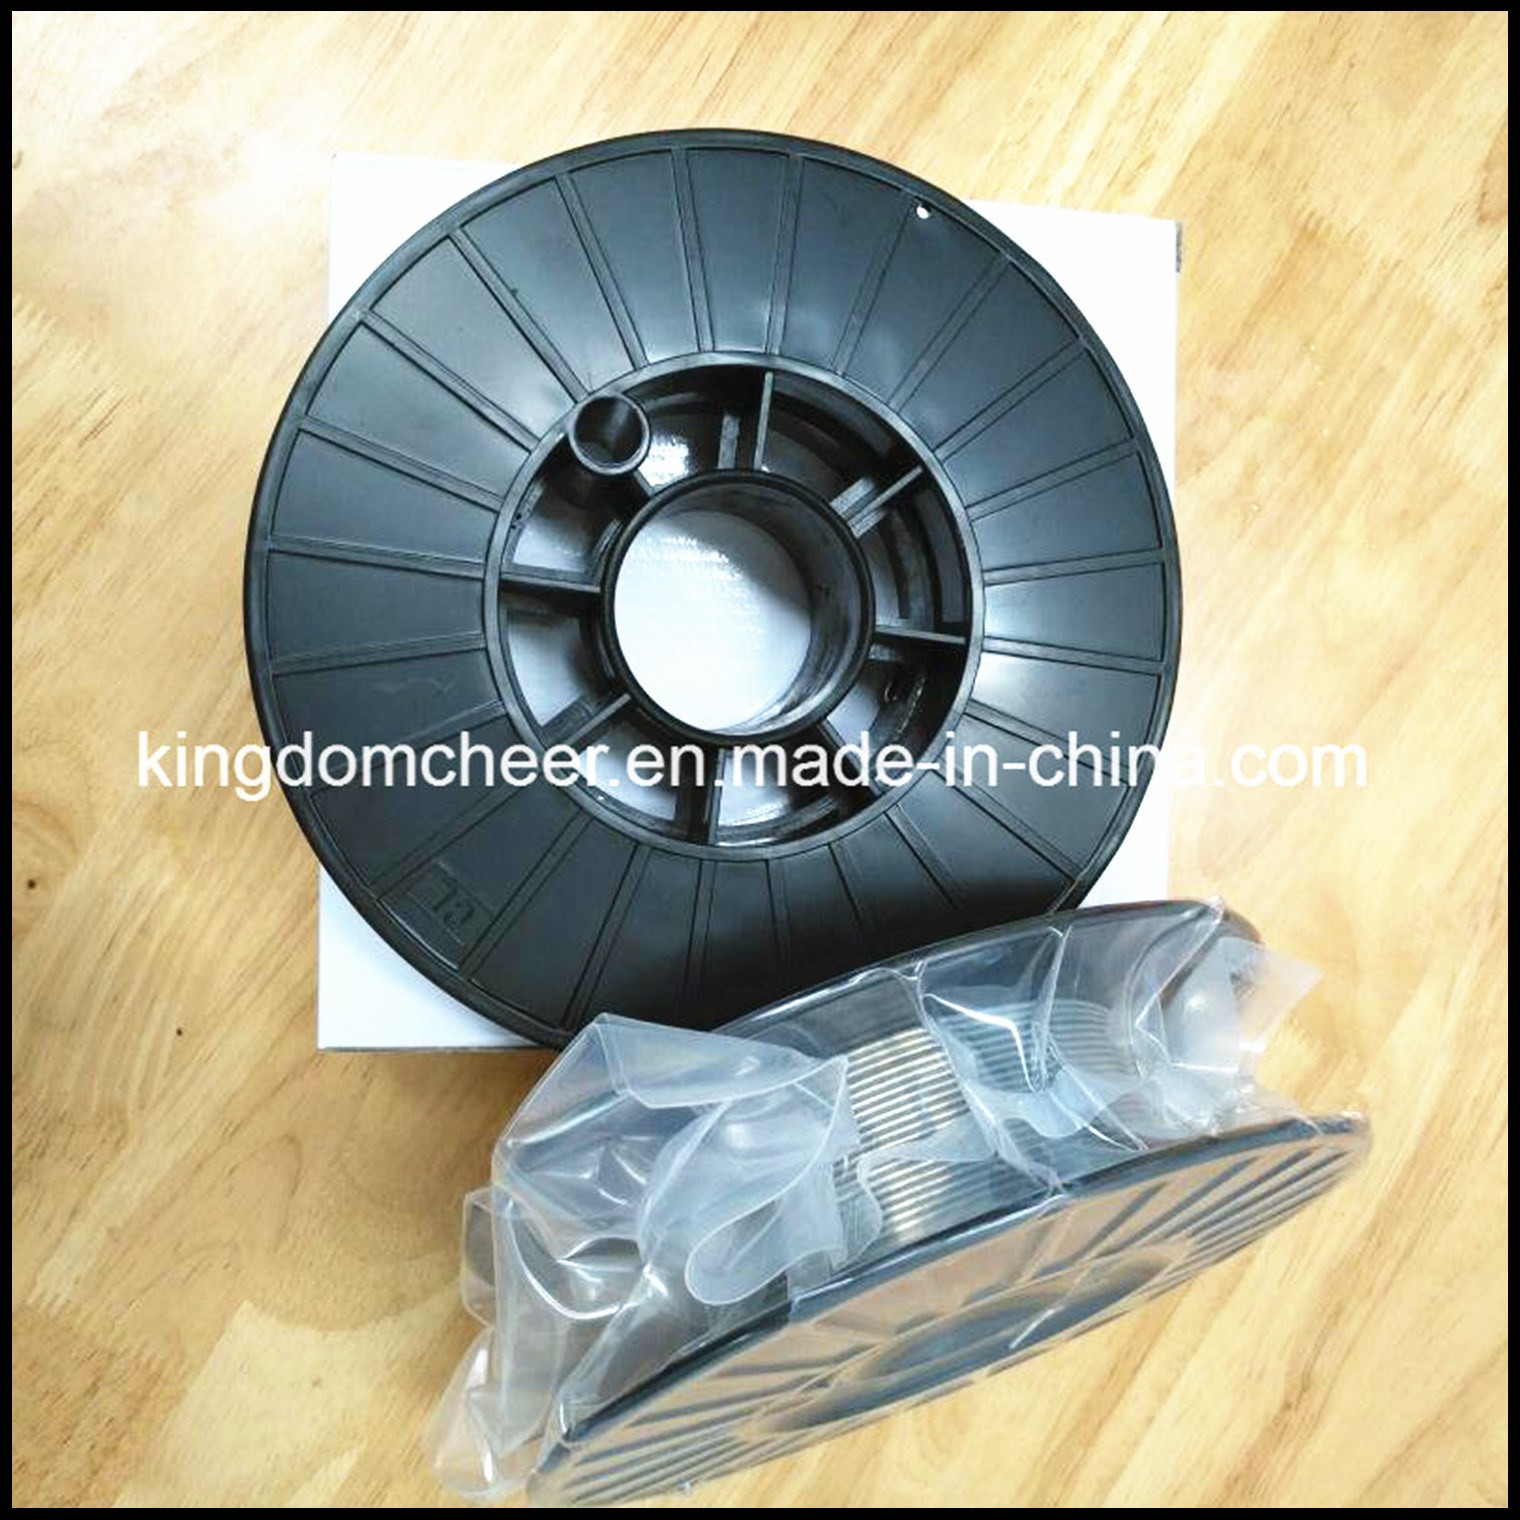 China Self Shielded E71t-GS Flux Core Wire Manufacturer Directly ...